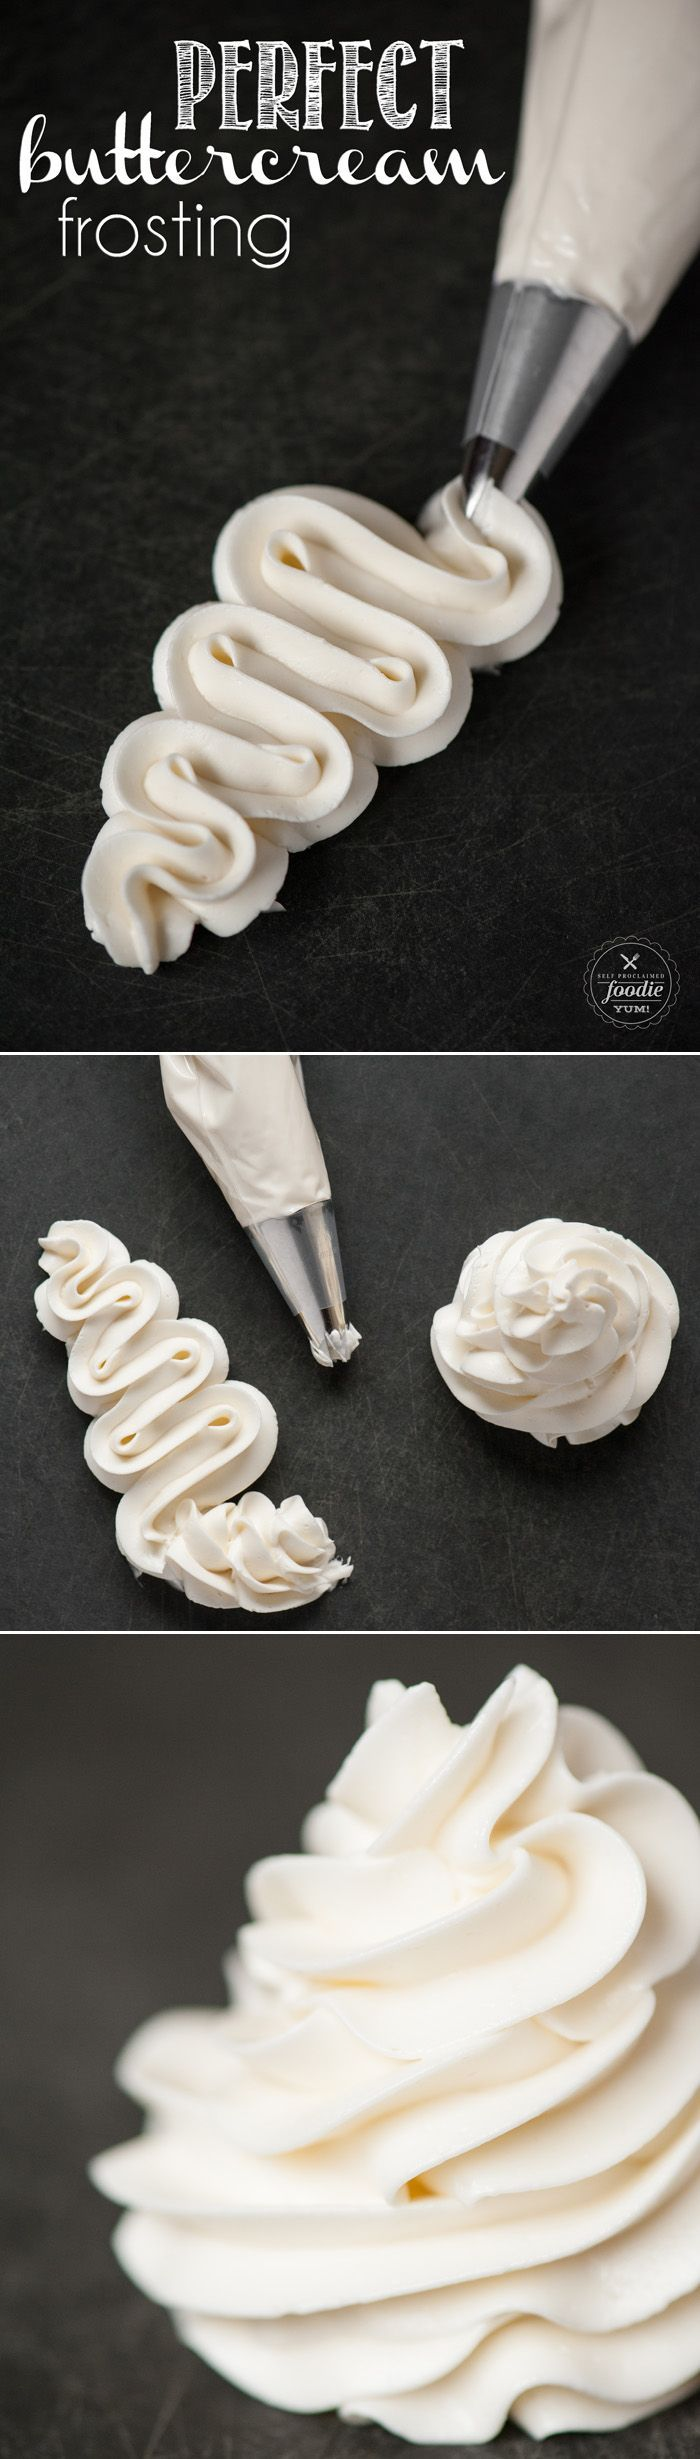 Next time you bake a cake or make cupcakes, you'll want to make this rich, smooth, and incredibly delicious traditional yet Perfect Buttercream Frosting. #creamfrosting